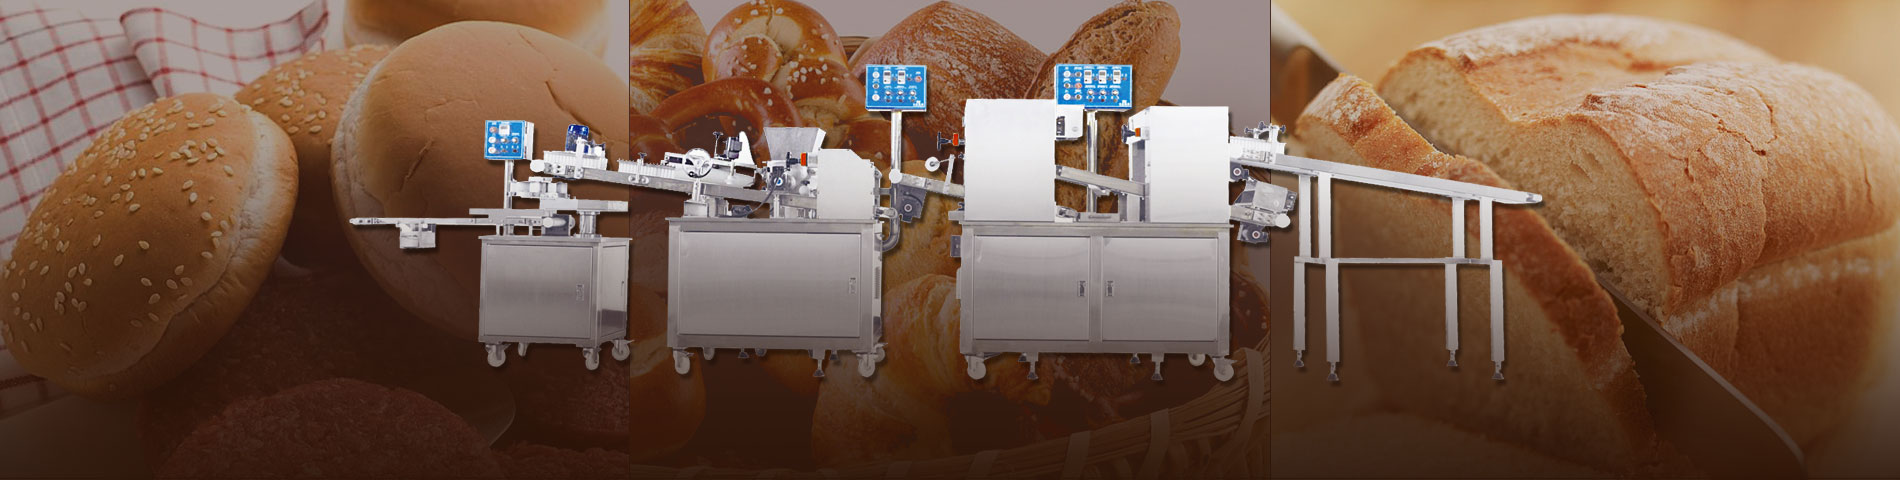 麵包、吐司、漢堡包 TY-8530 bread making machine